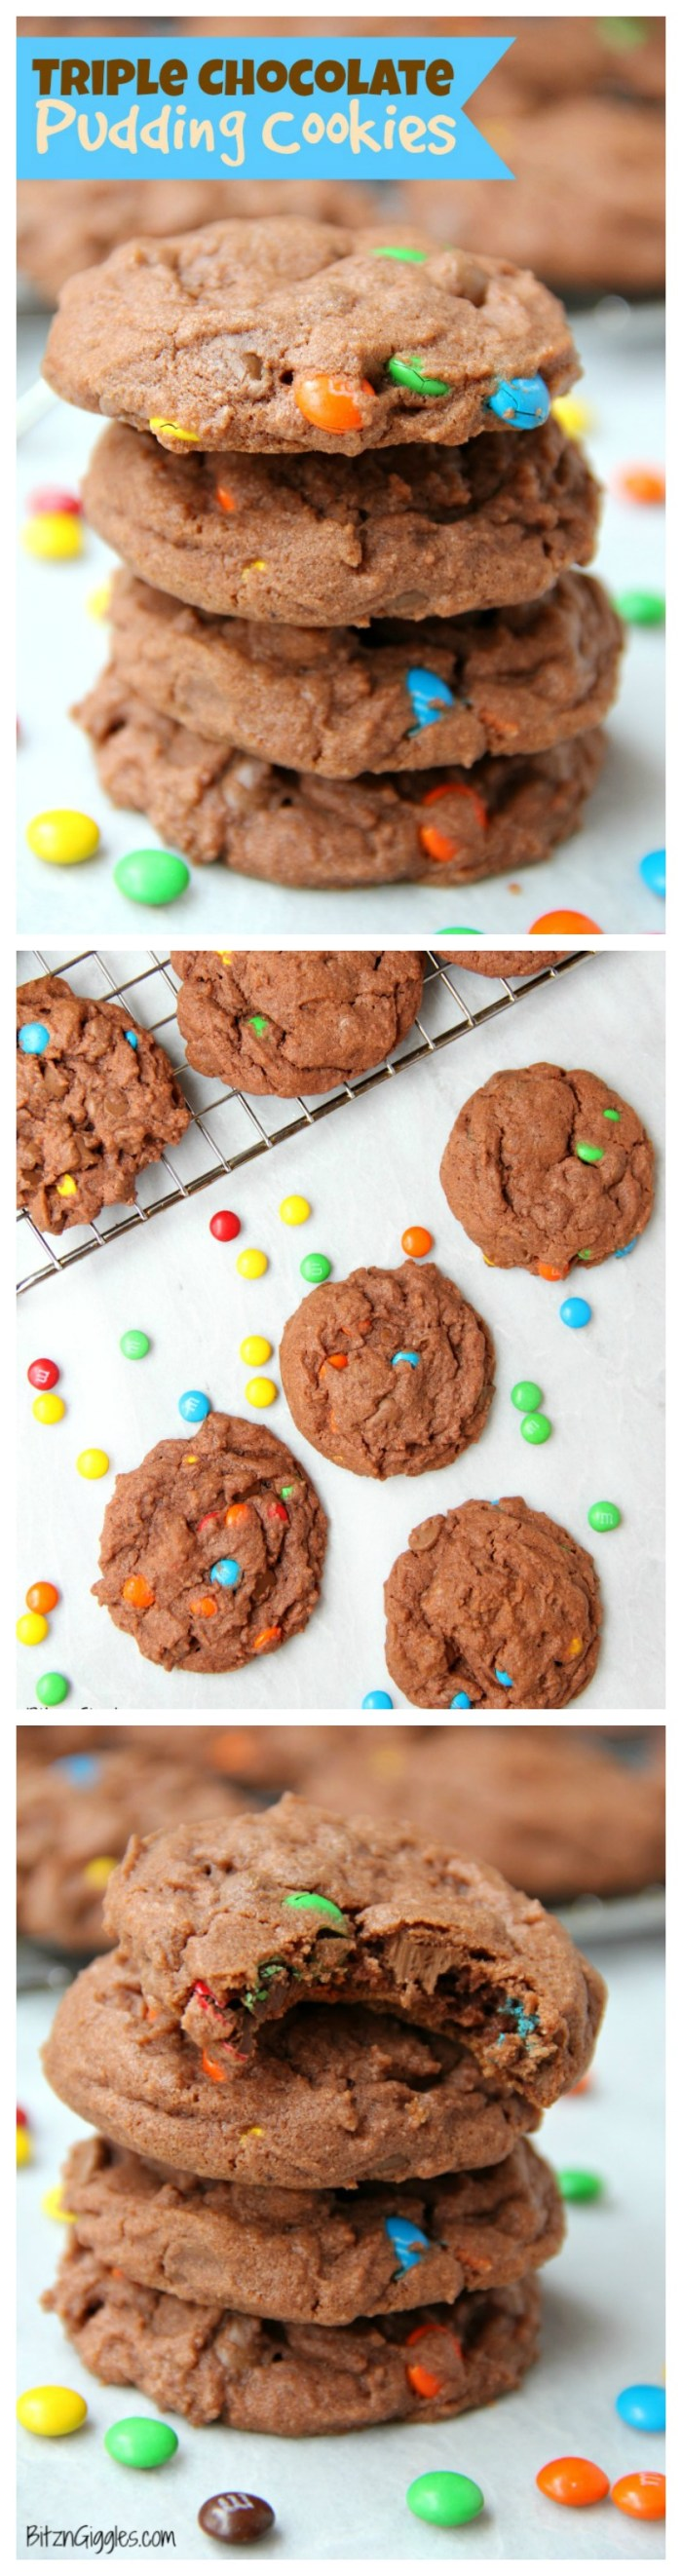 Triple Chocolate Pudding Cookies - Chewy, chocolaty, candy-filled cookies that use pudding as a secret ingredient to keep them nice and soft!